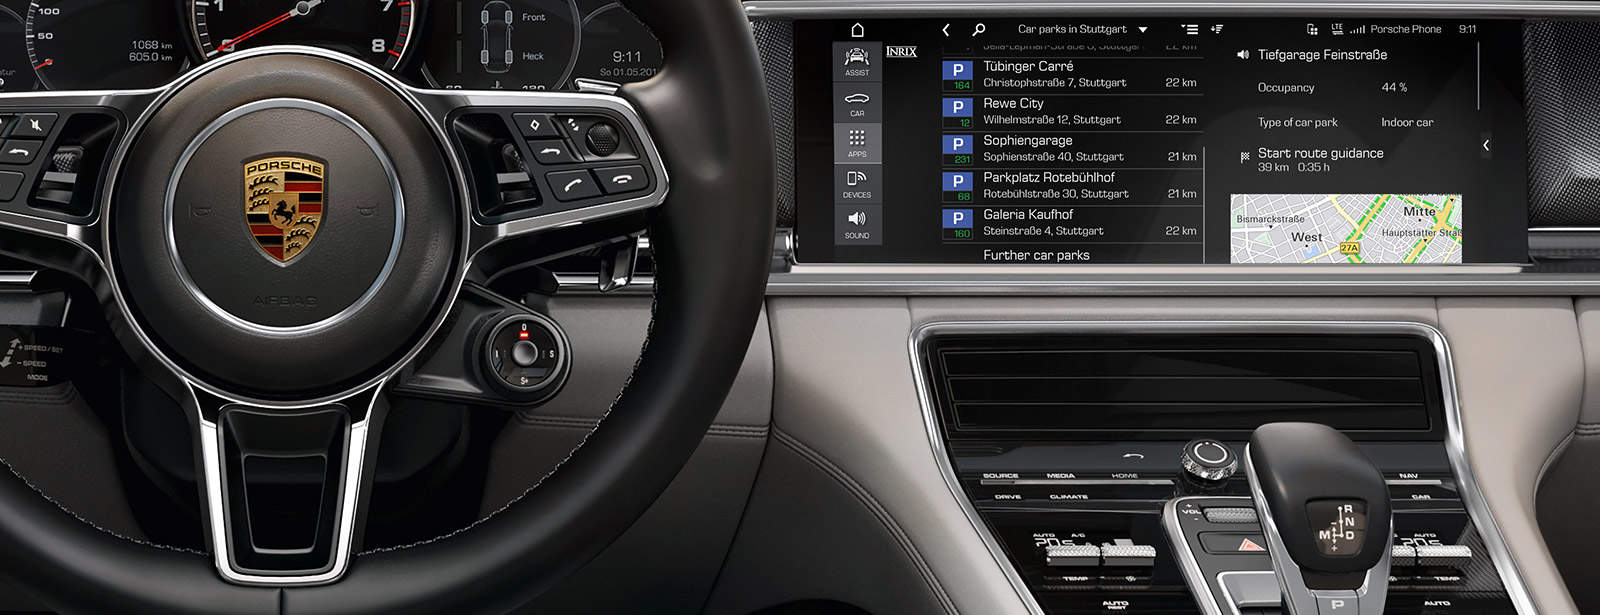 Porsche Updates Connected Car Features with SIM, Wi-Fi